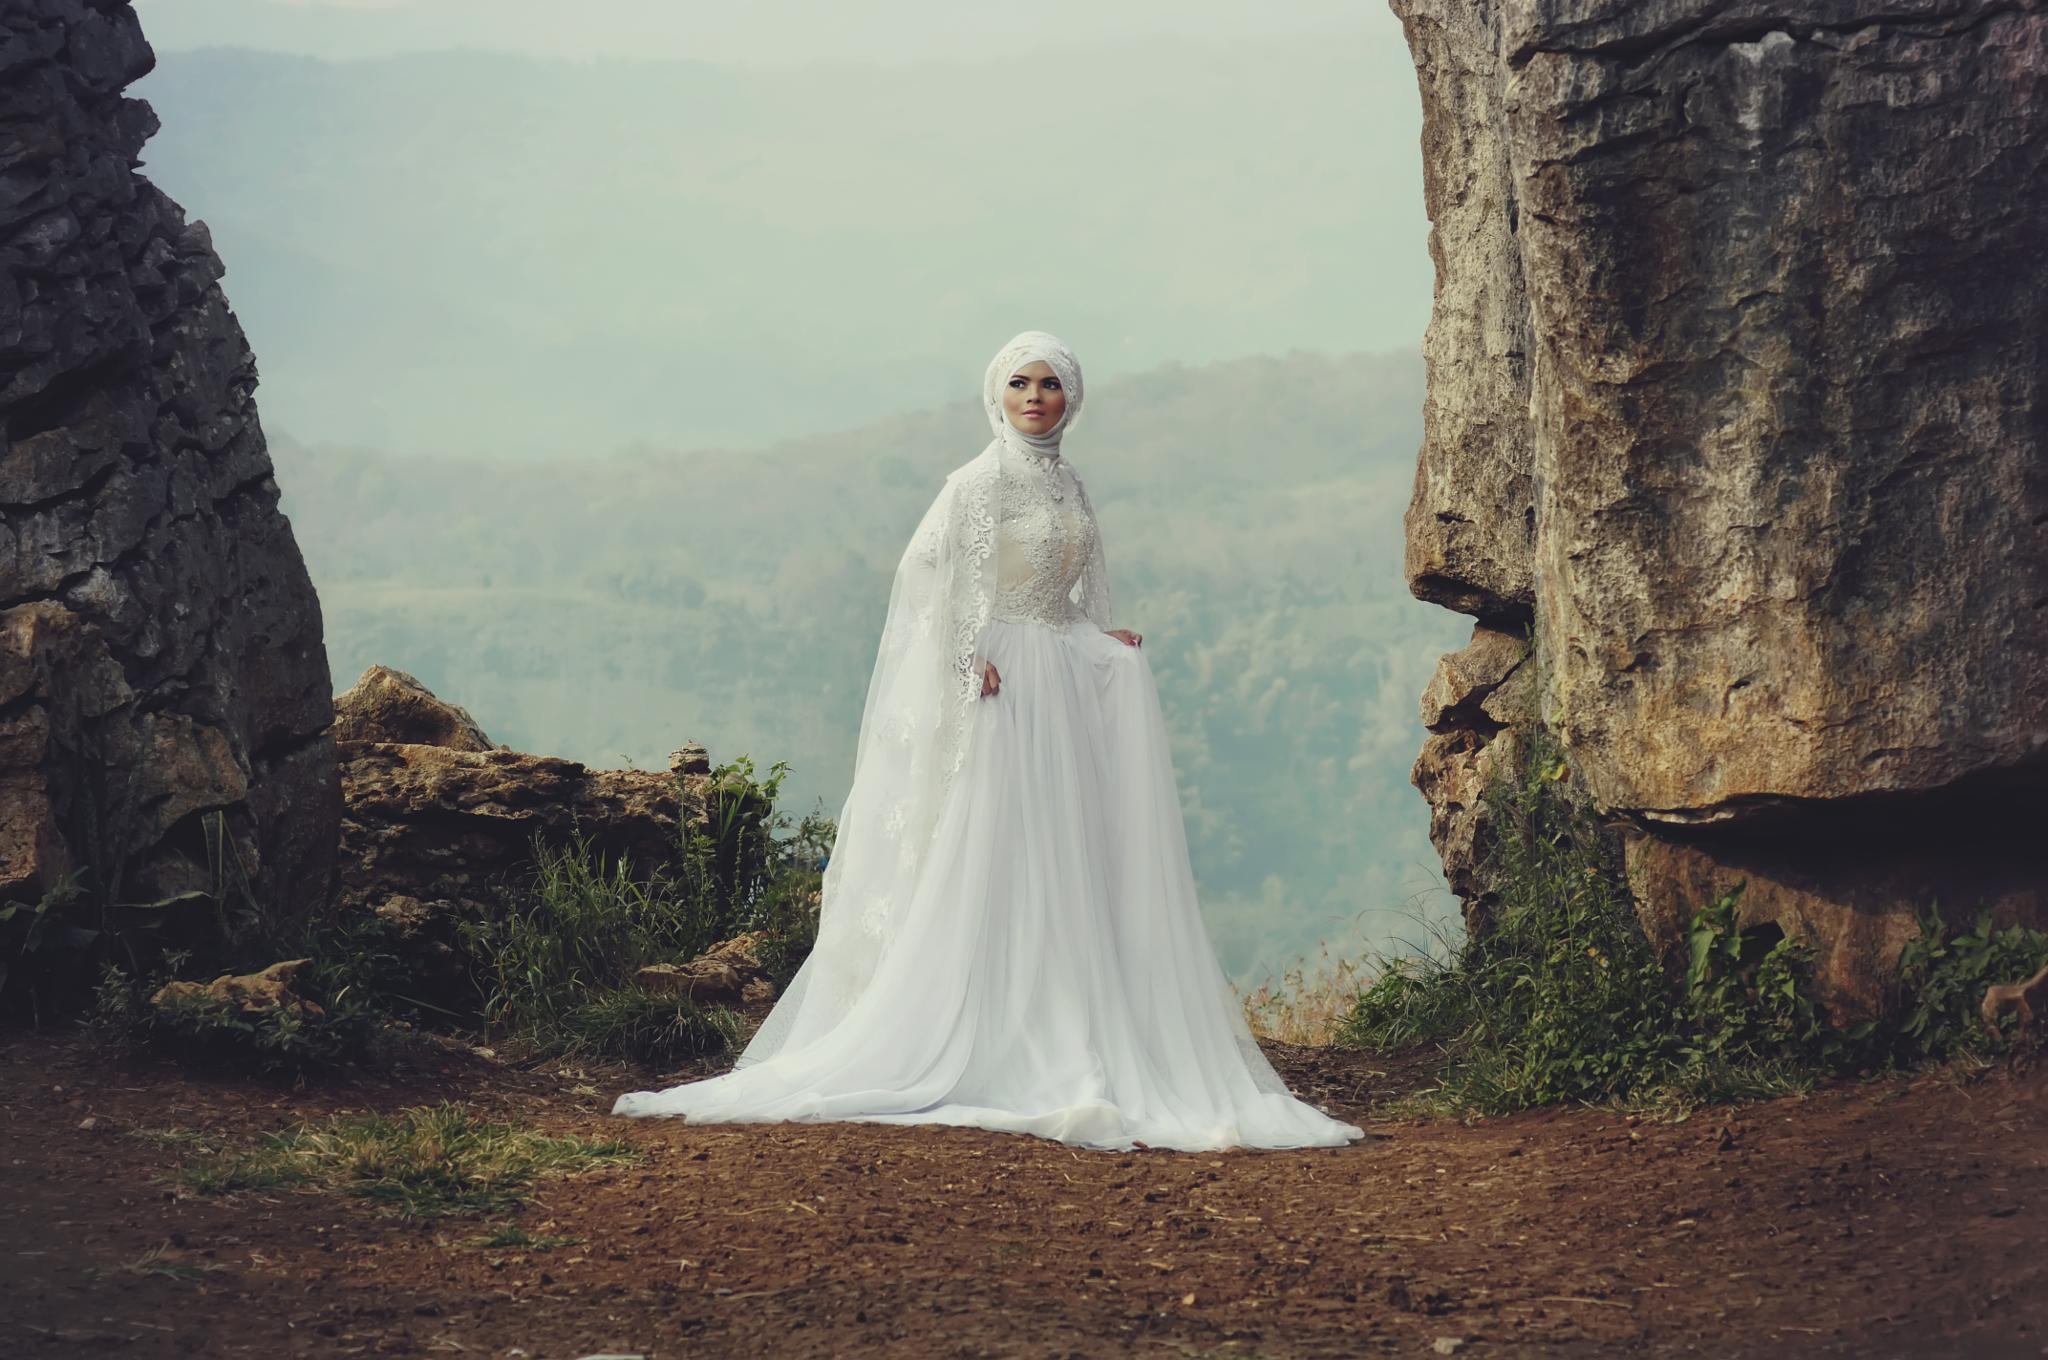 Beauty of Hijab Fashion by Dudy GR's